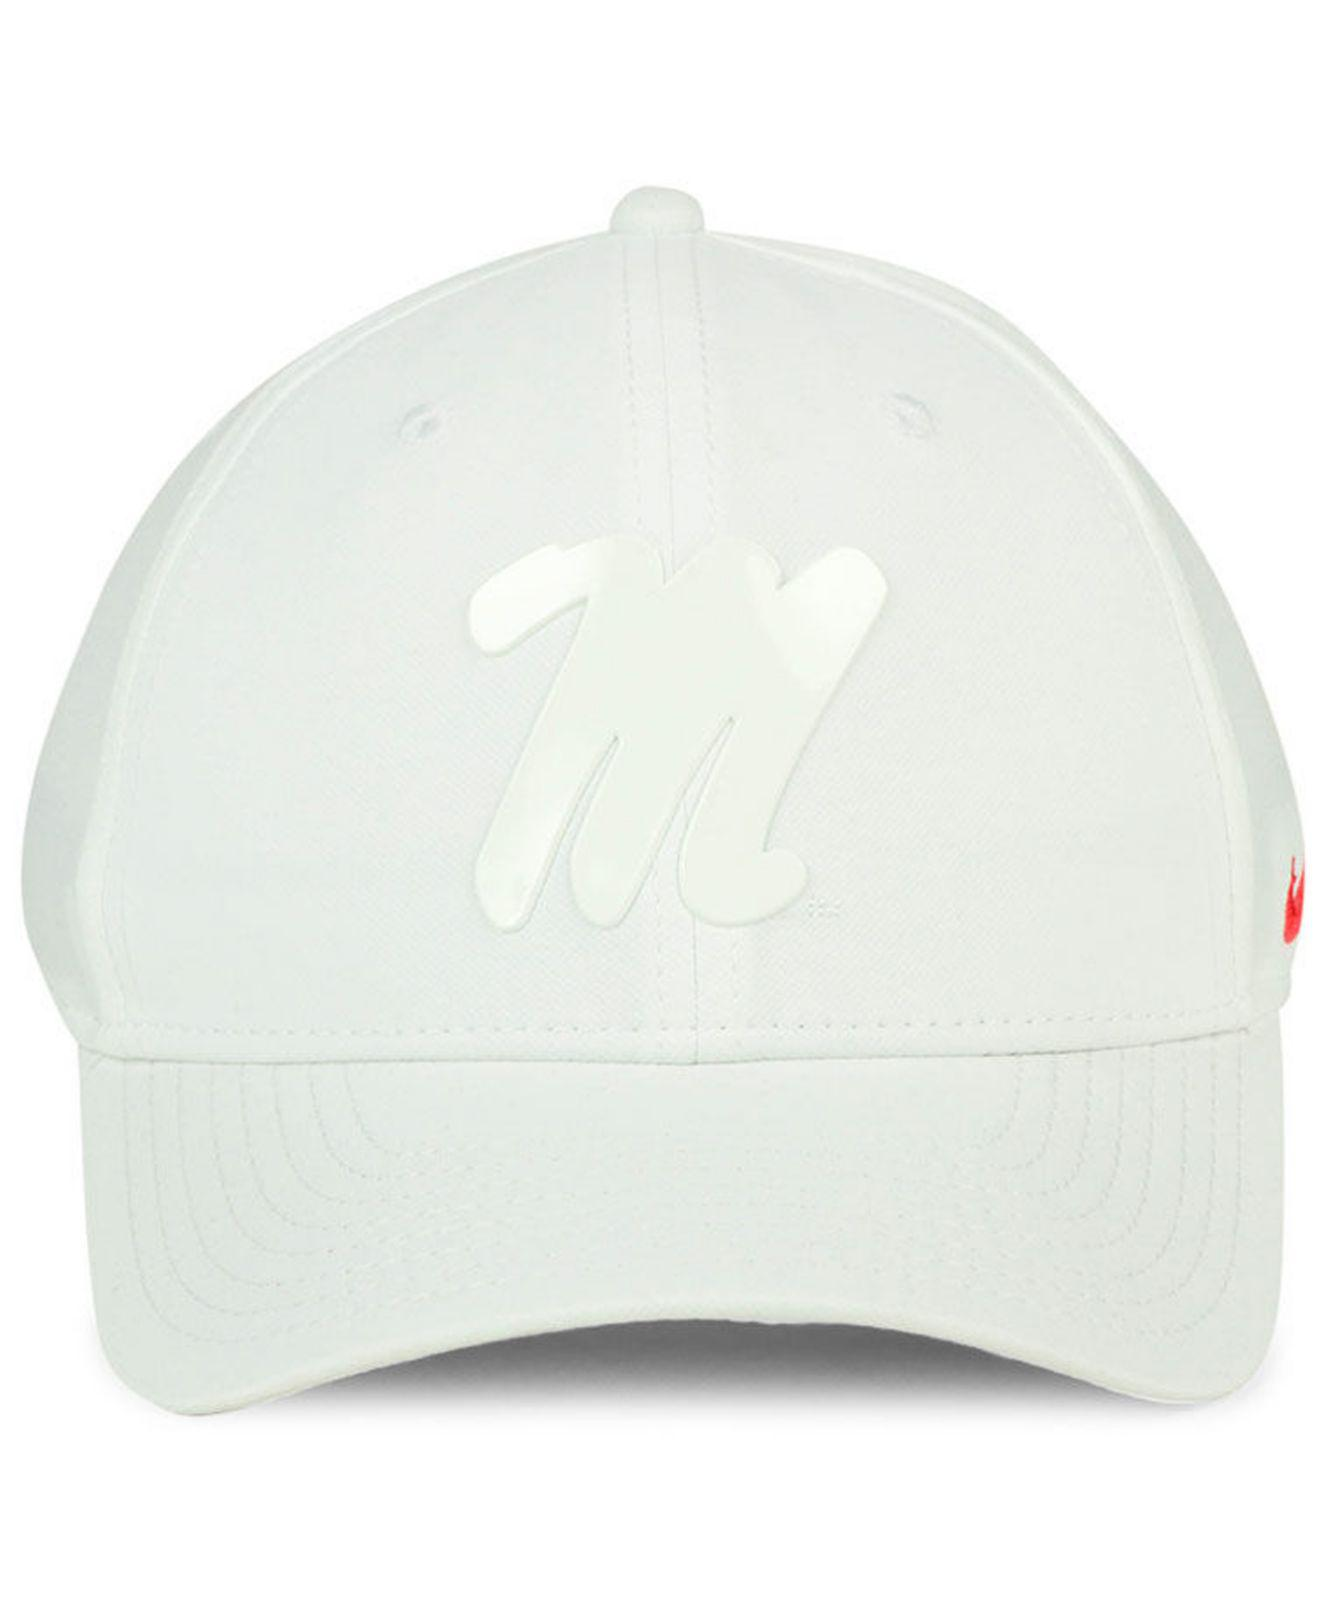 size 40 36113 cb4a2 ... usa lyst nike ole miss rebels col cap in white for men 11981 2e6aa